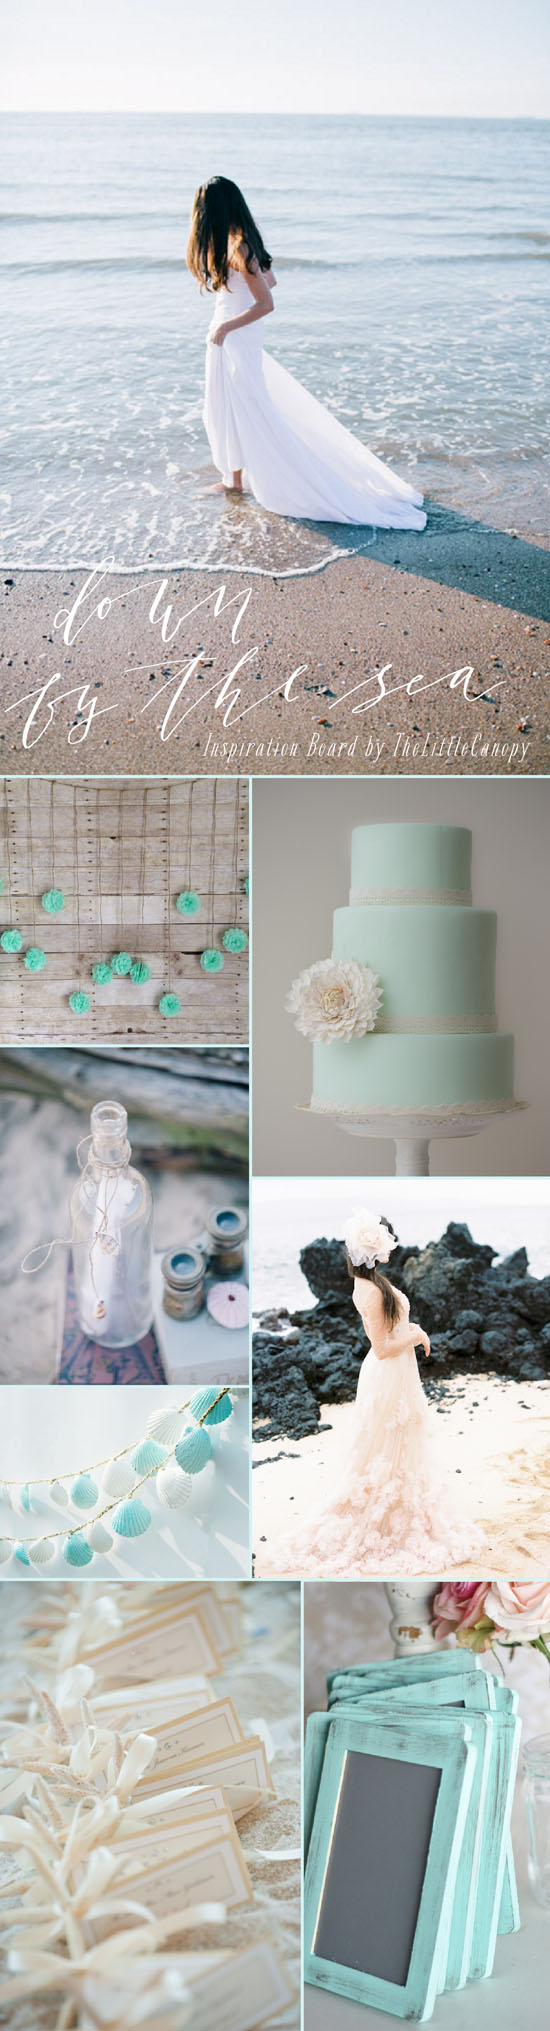 Day dreaming of a wedding down by the sea... by the beautiful sea. Enjoy!